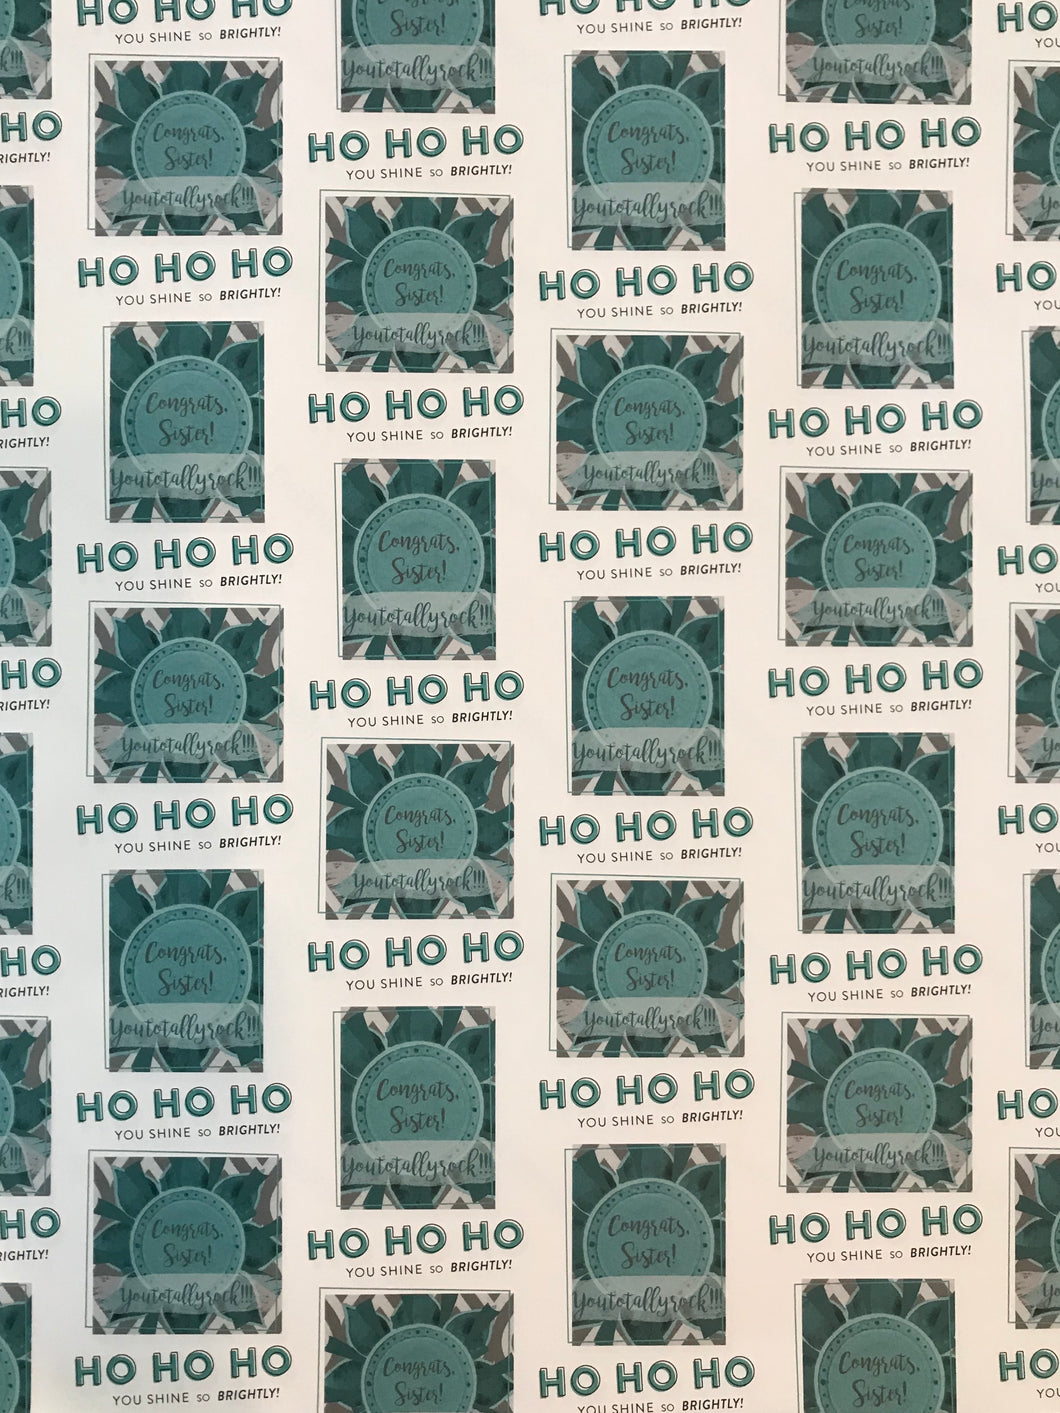 Ho Ho Ho! You shine so brightly!- White Wrapping Paper